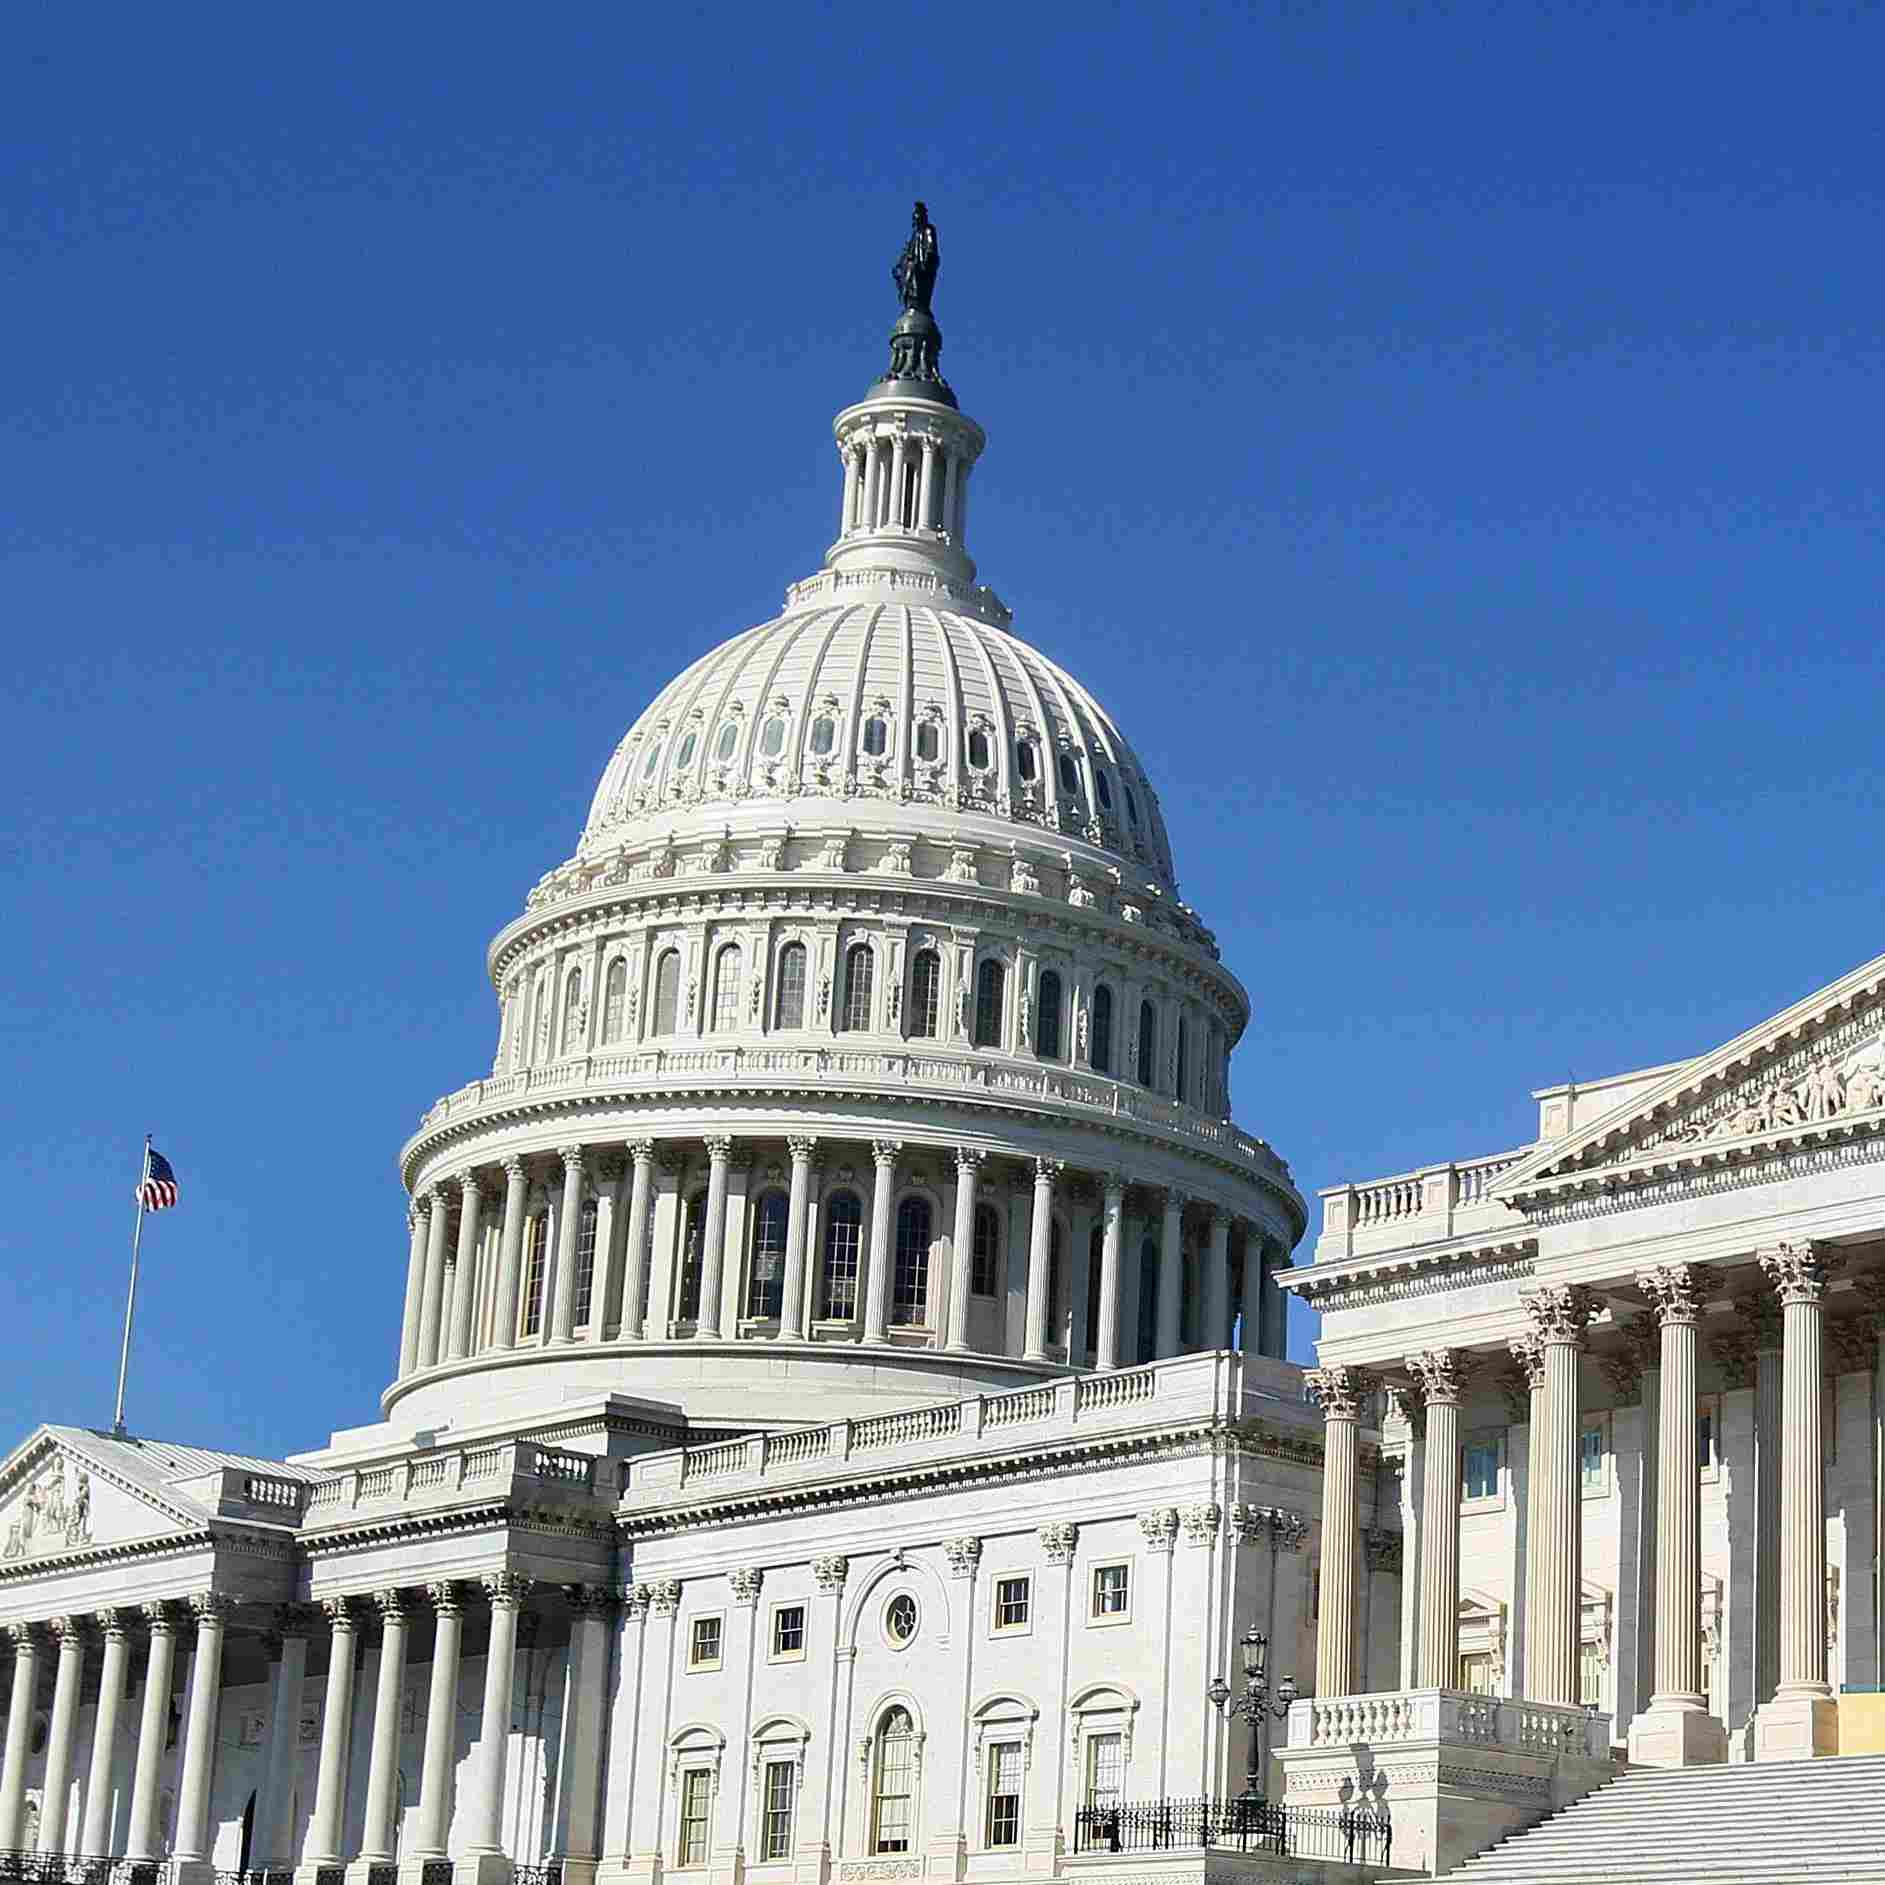 The U.S. government supports consumer agencies that can help with travel complaints.